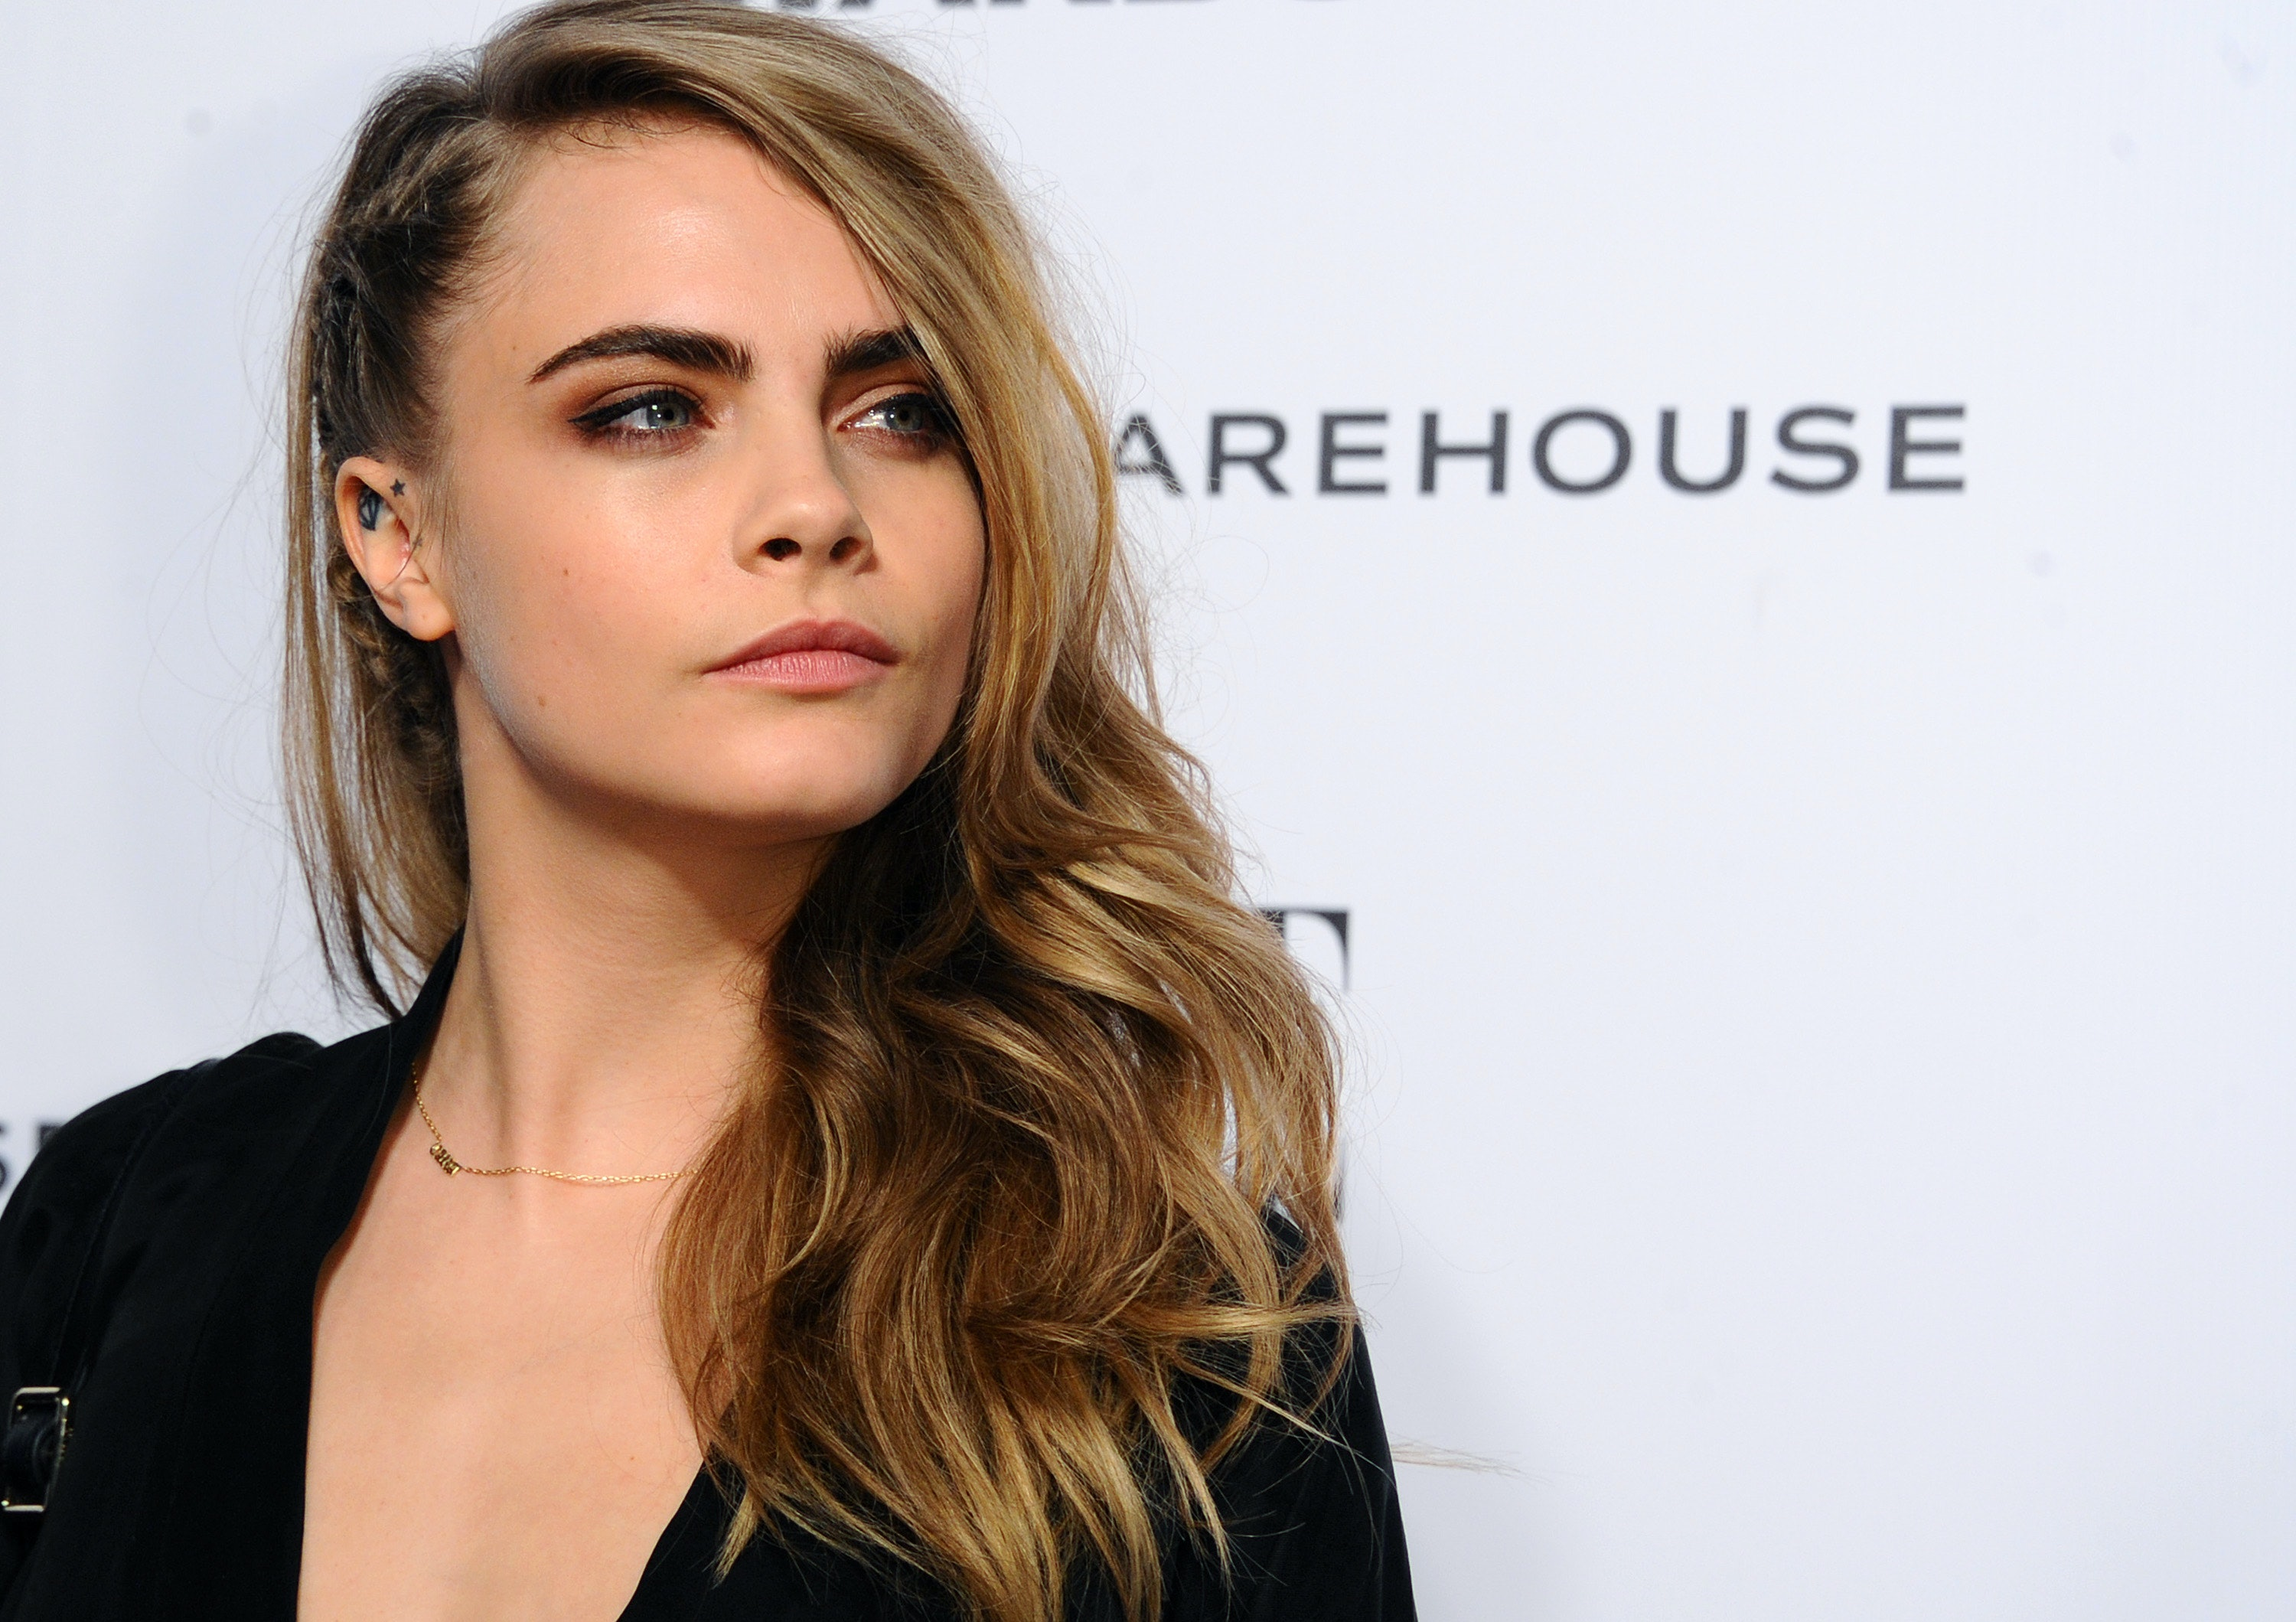 Cara Delevingne Clears the Air on Her Rumored Exit from Modeling in a TwitterEssay